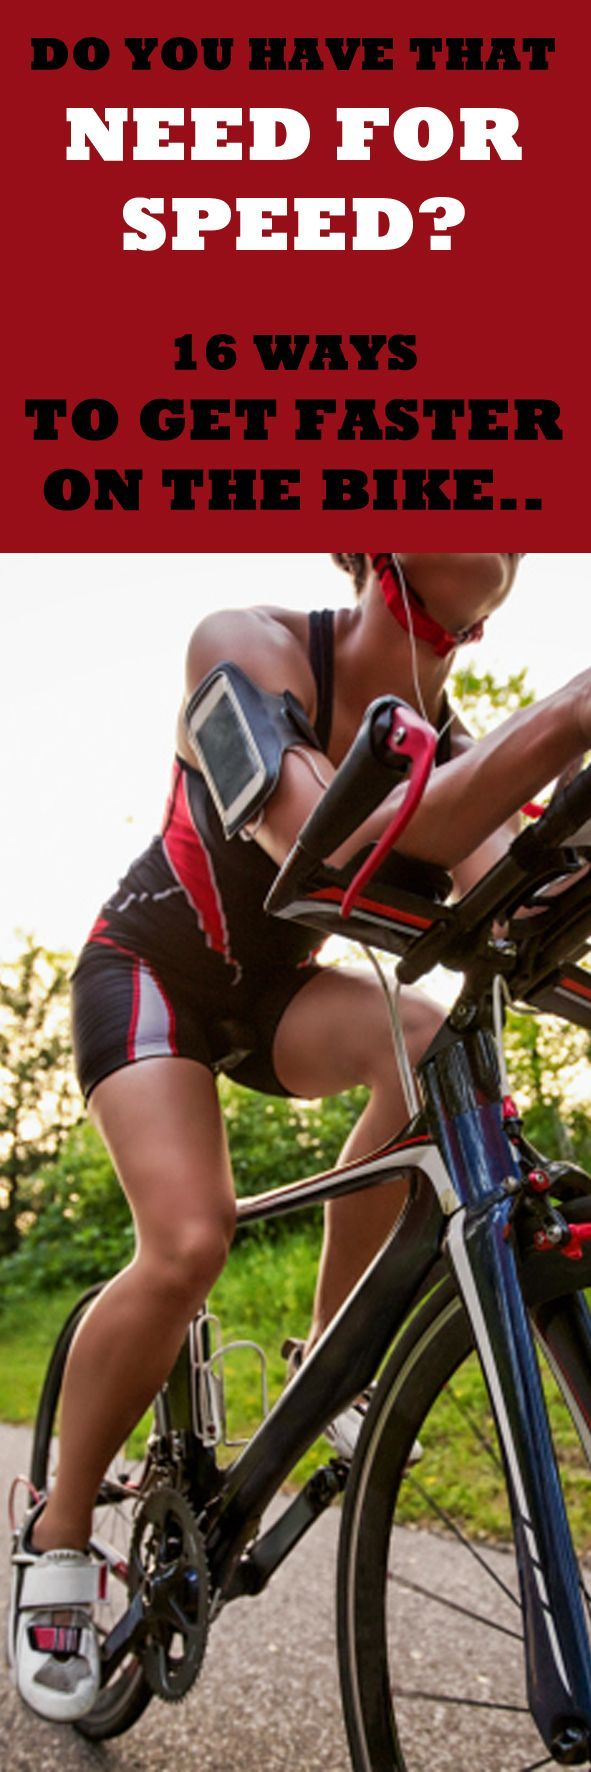 .DO YOU HAVE THAT NEED FOR SPEED?   16 WAYS  TO GET FASTER ON THE BIKE: http://thecyclingbug.co.uk/health-and-fitness/training-tips/b/weblog/archive/2014/01/22/16-ways-to-increase-your-cycling-speed.aspx?utm_source=Pinterest&utm_medium=Pinterest%20Post&ut